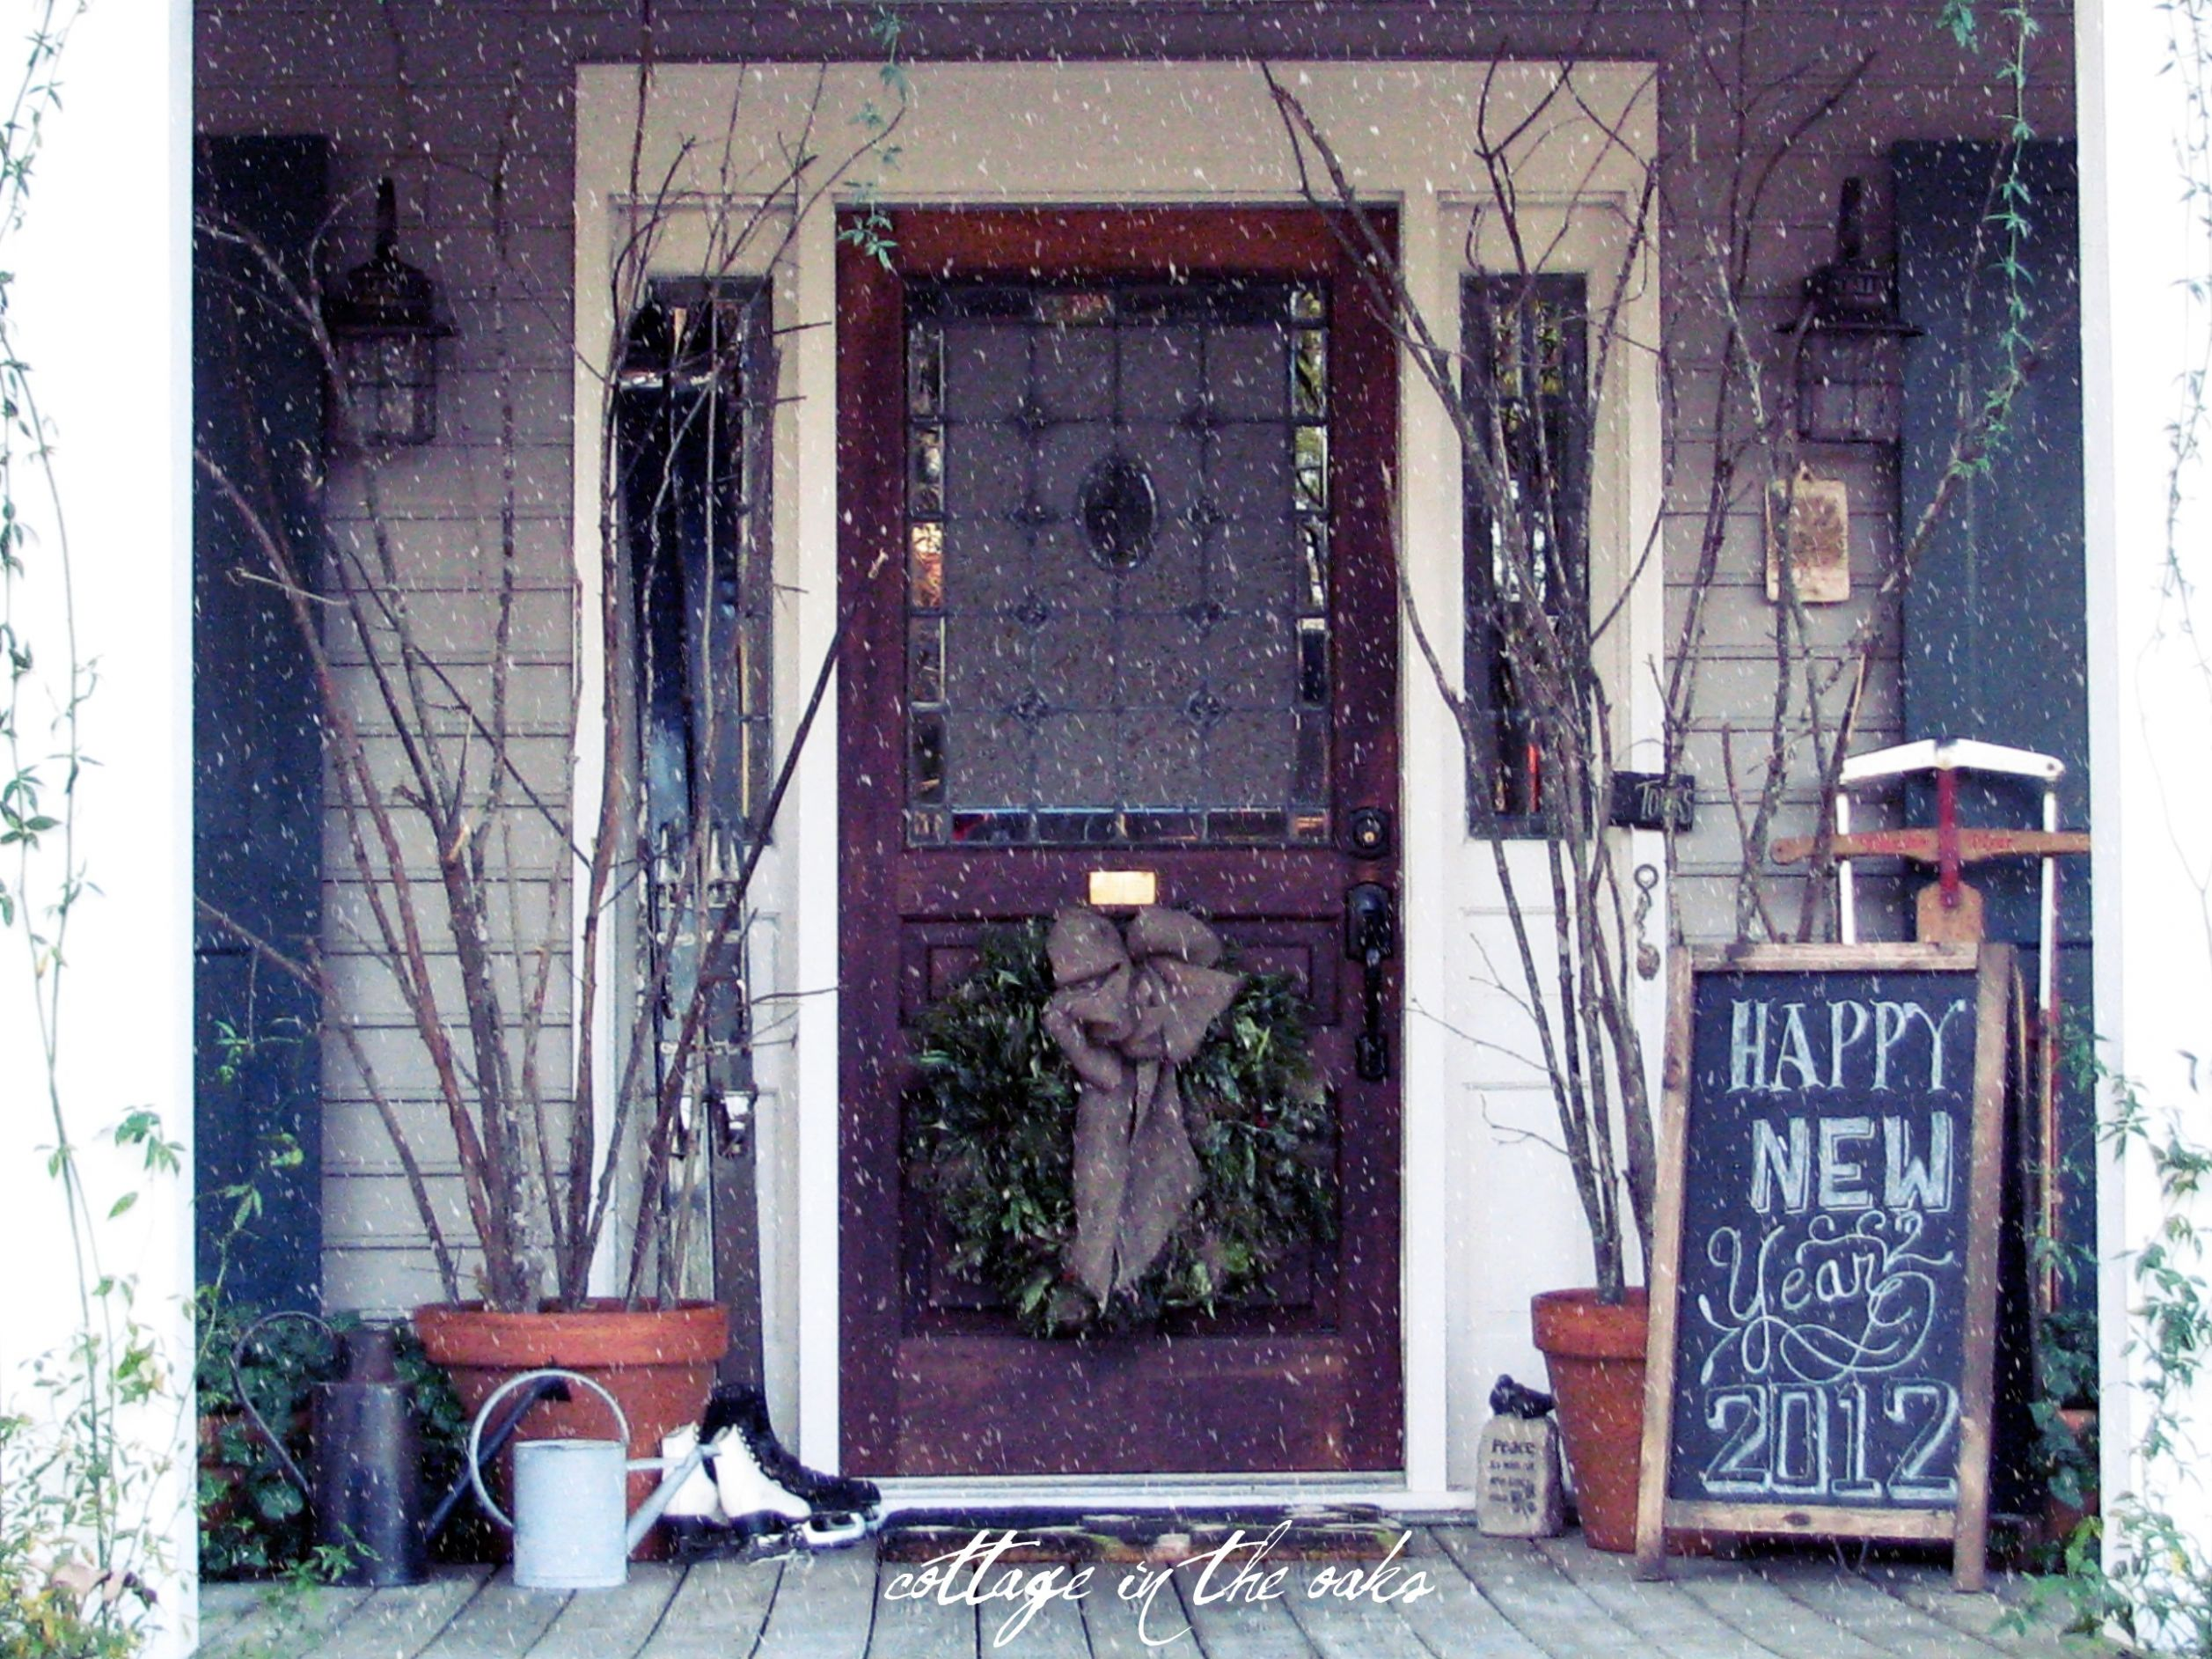 Winter Front Porch - Cottage in the Oaks - front porch decor january